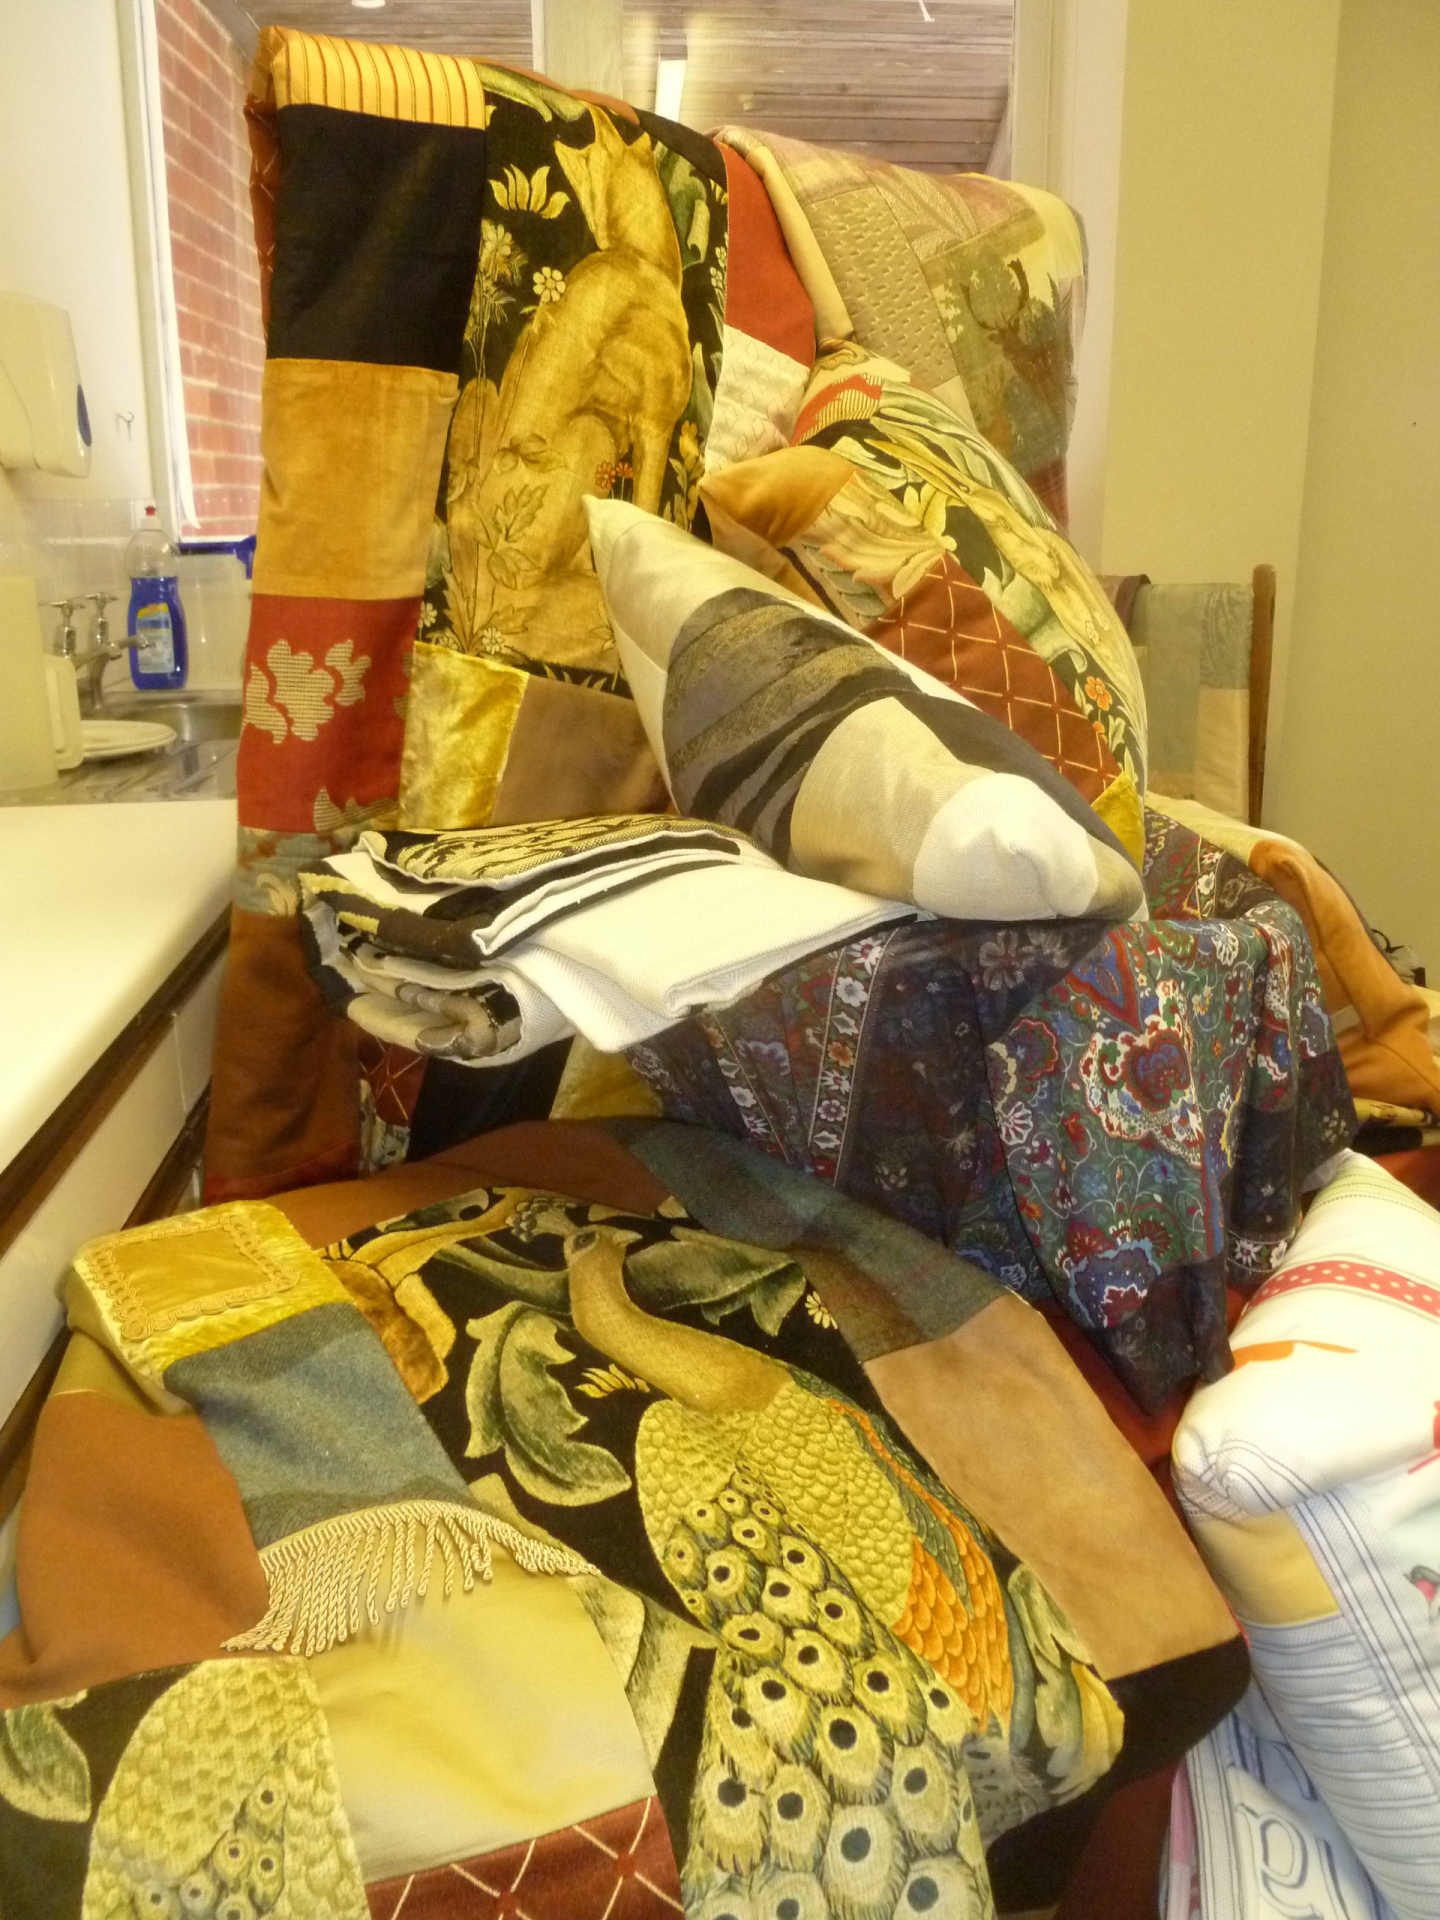 Cornucopia of luxurious blanket & cushions